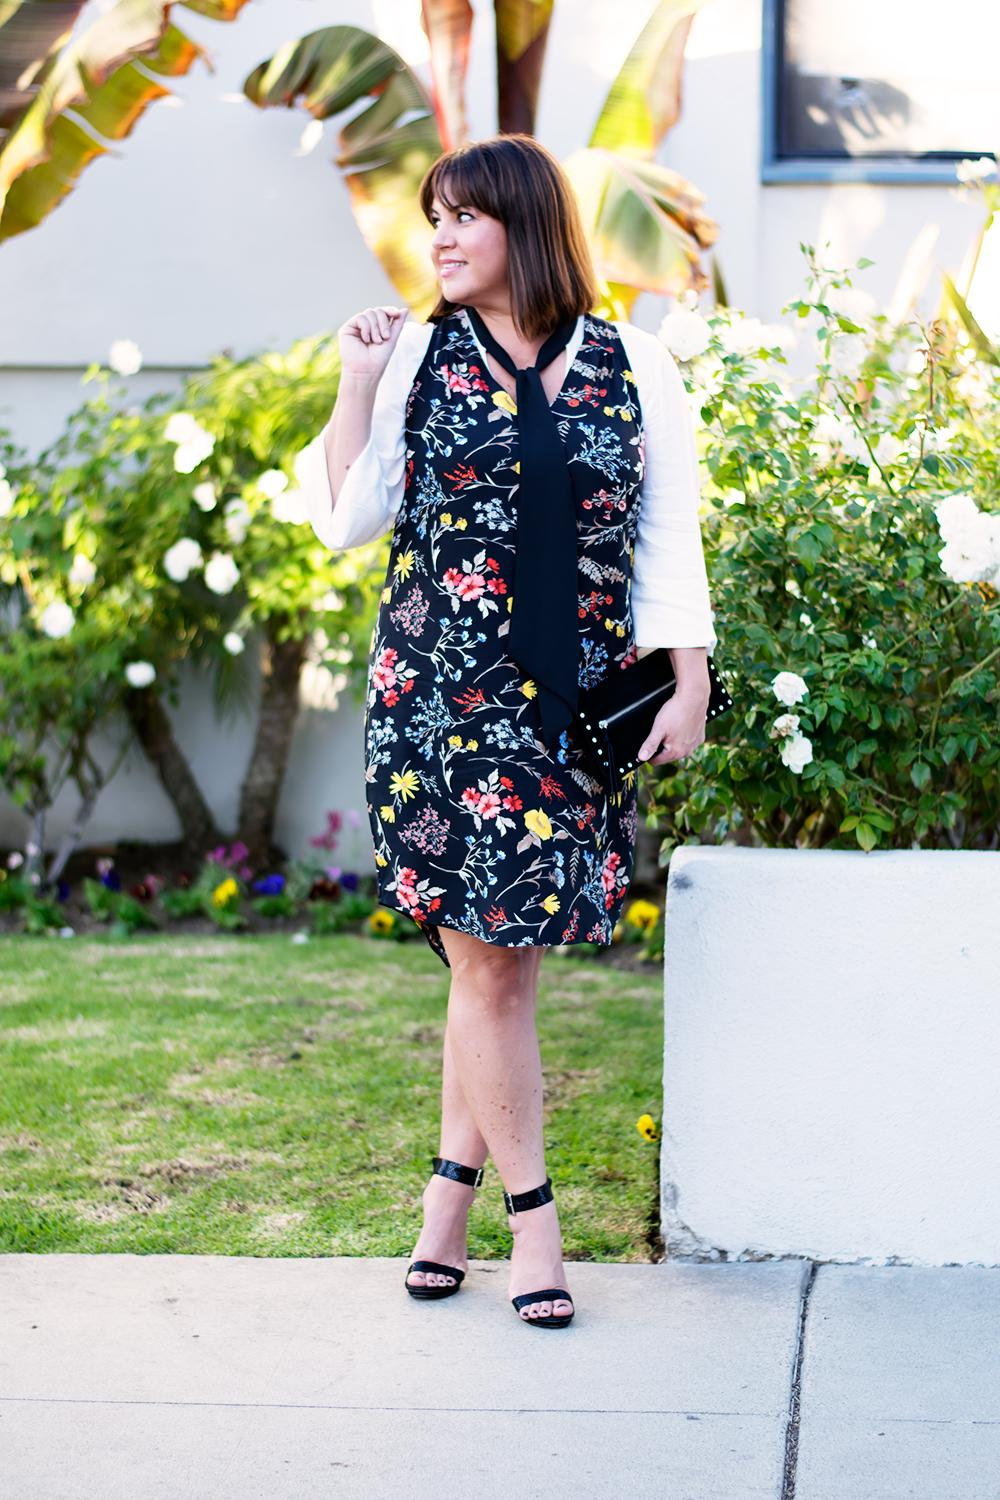 7barefoot-in-la-nordstrom-outfit-fashion-street-style-blogger